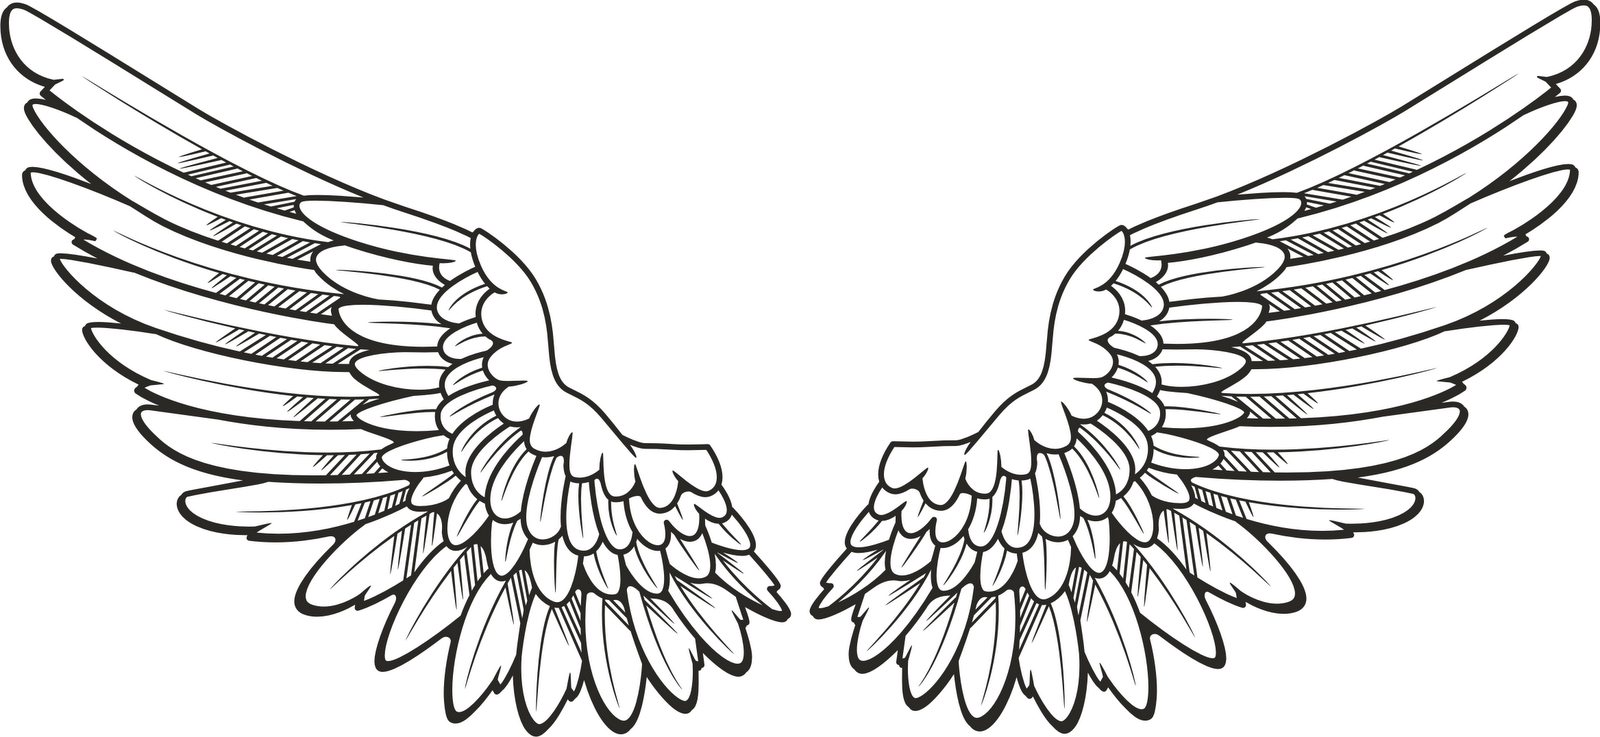 Simple Angel Wing Drawing At Getdrawings Com Free For